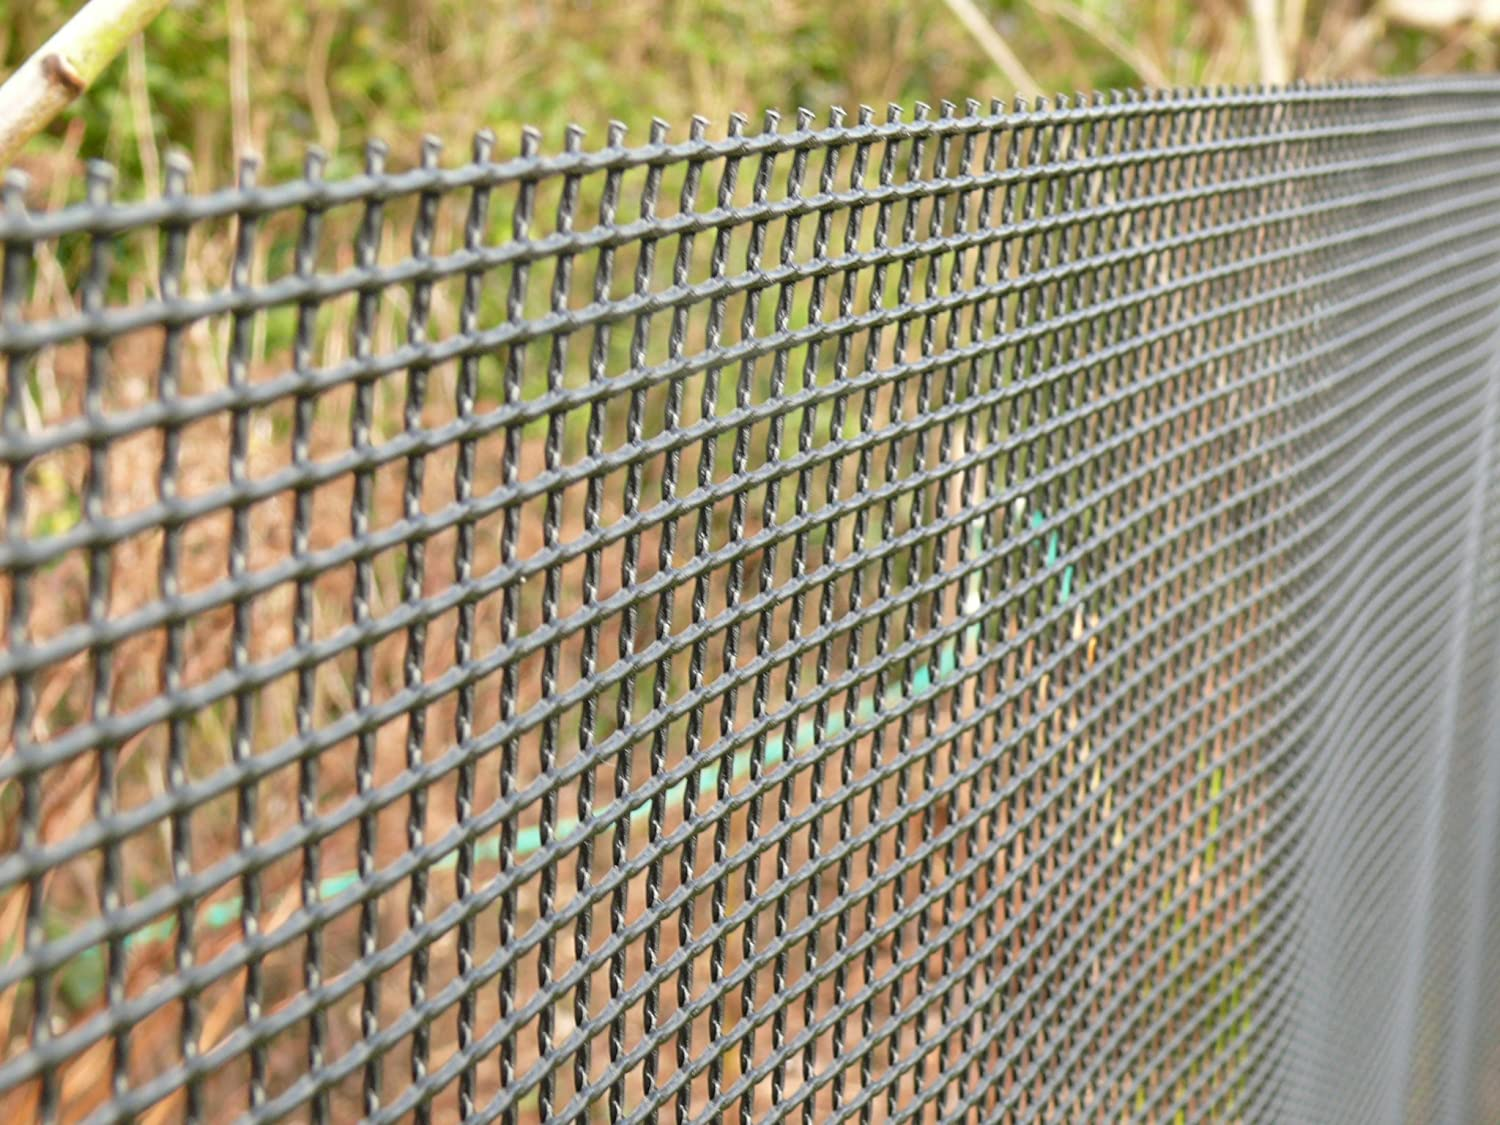 Plastic Garden Fencing 1m X 10m Black 5mm Holes Green Netting Robust Fence  Mesh   Ideal For Plant, Pet, Vegetable Protection Screening And Climbing  Plant ...